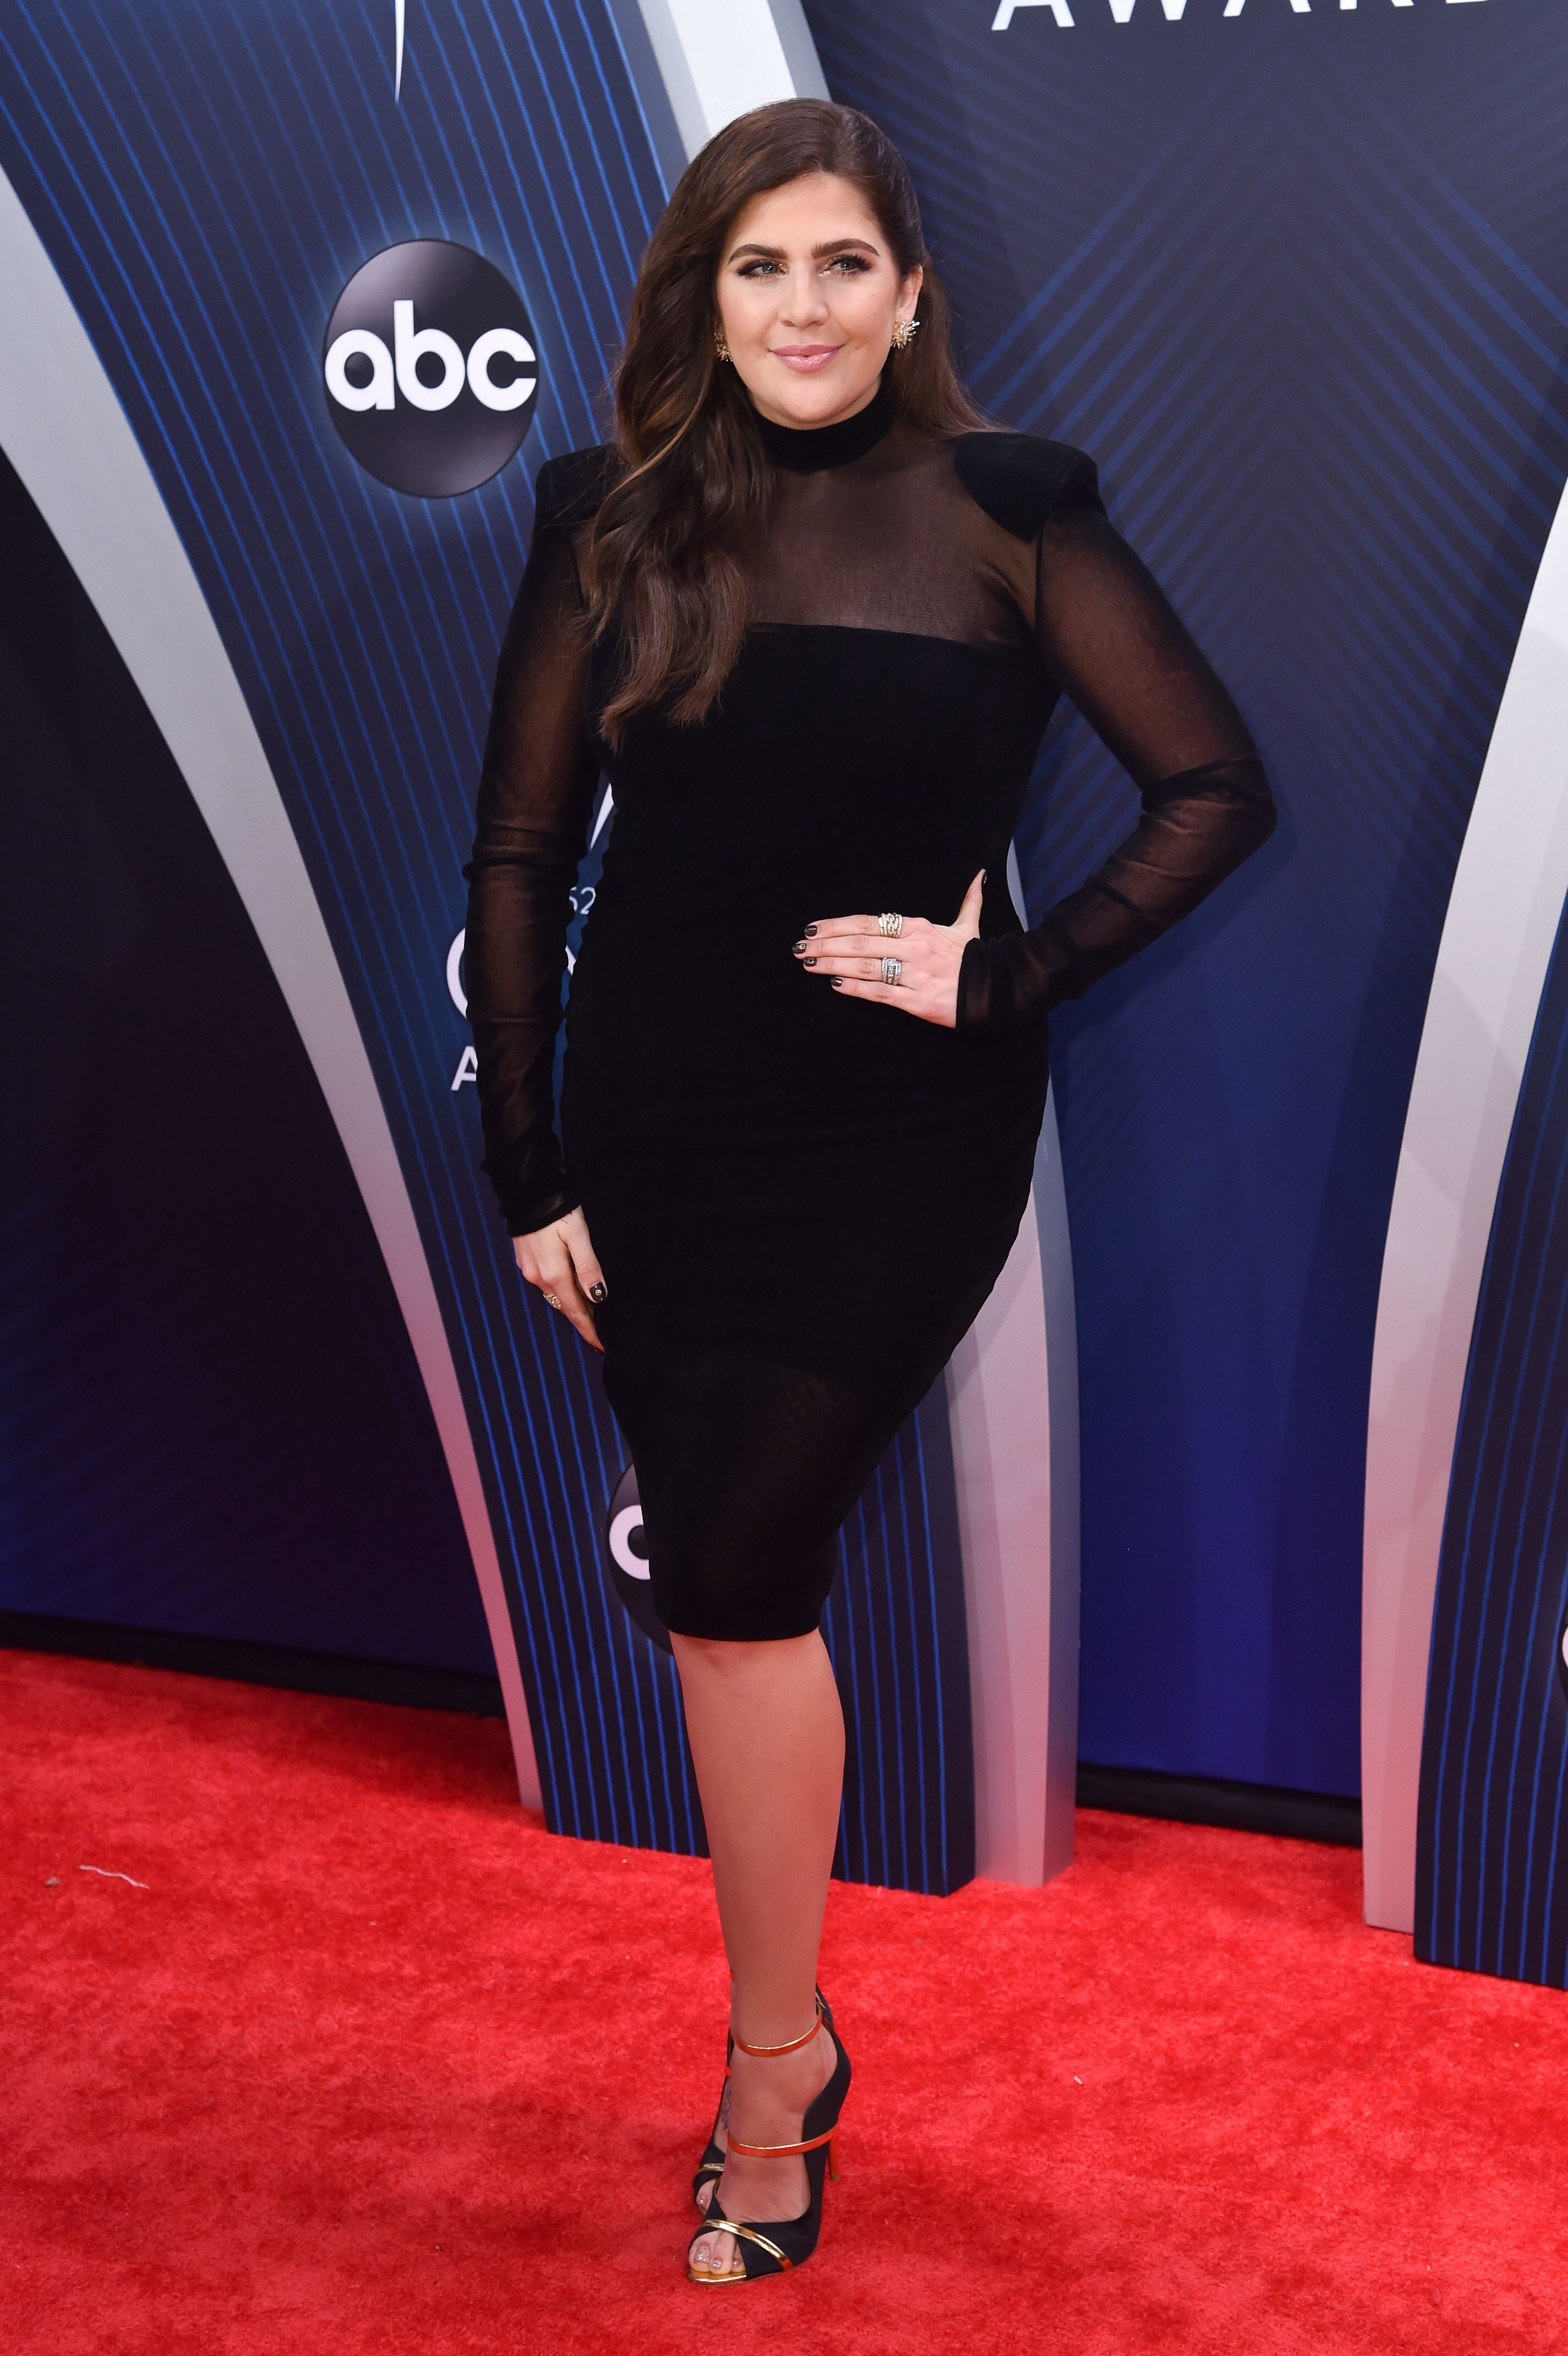 Hillary Scott attends the 52nd Annual CMA Awards in Nashville, Tennessee, on Nov. 14, 2018.